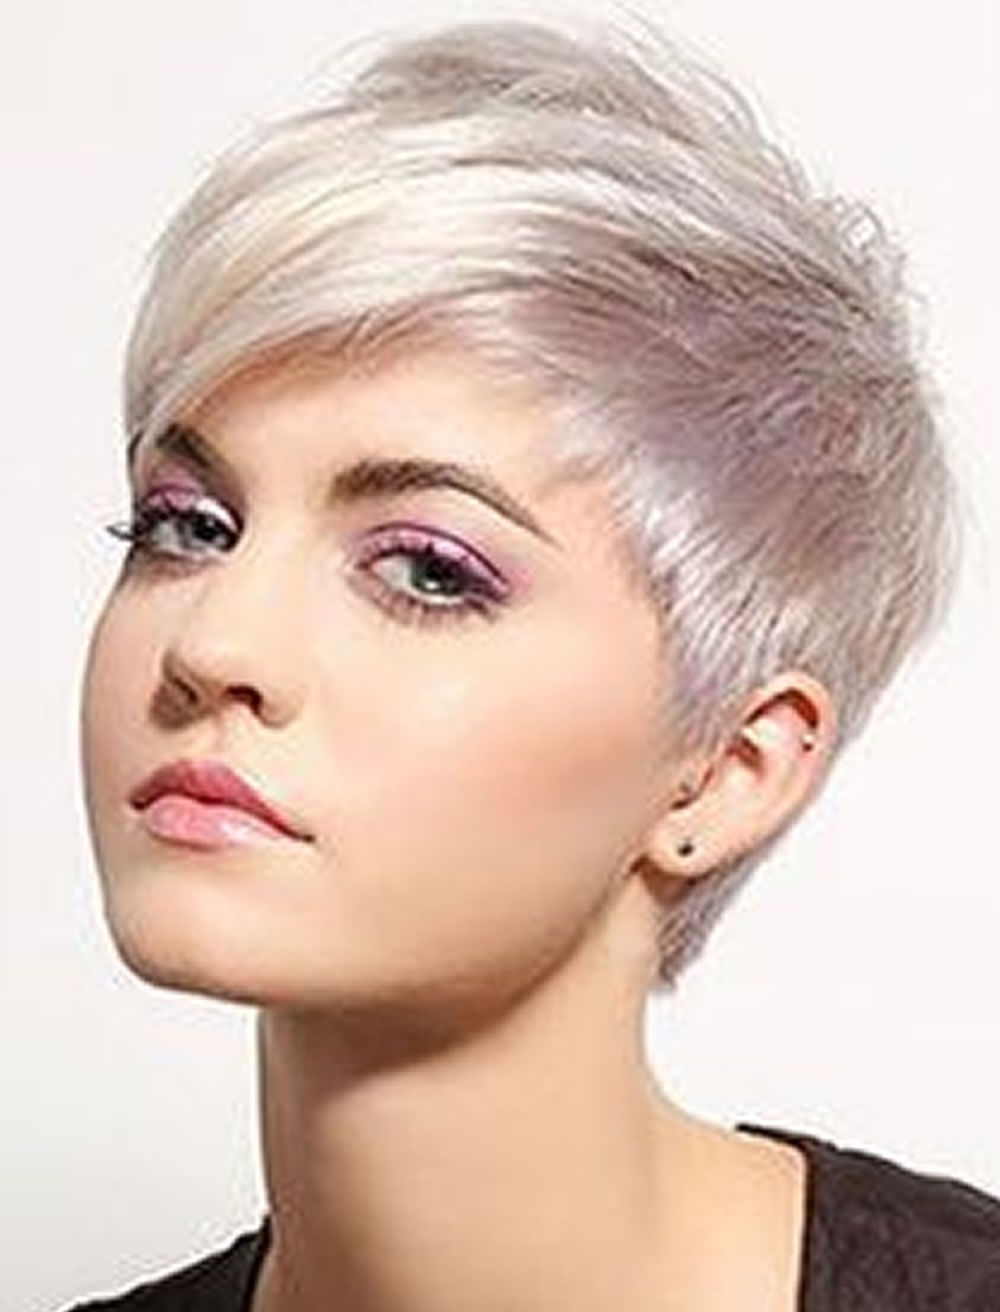 Pinlynda On Bunnies In 2018   Pinterest   Pixie Hair, Short With Funky Short Haircuts For Fine Hair (View 14 of 25)